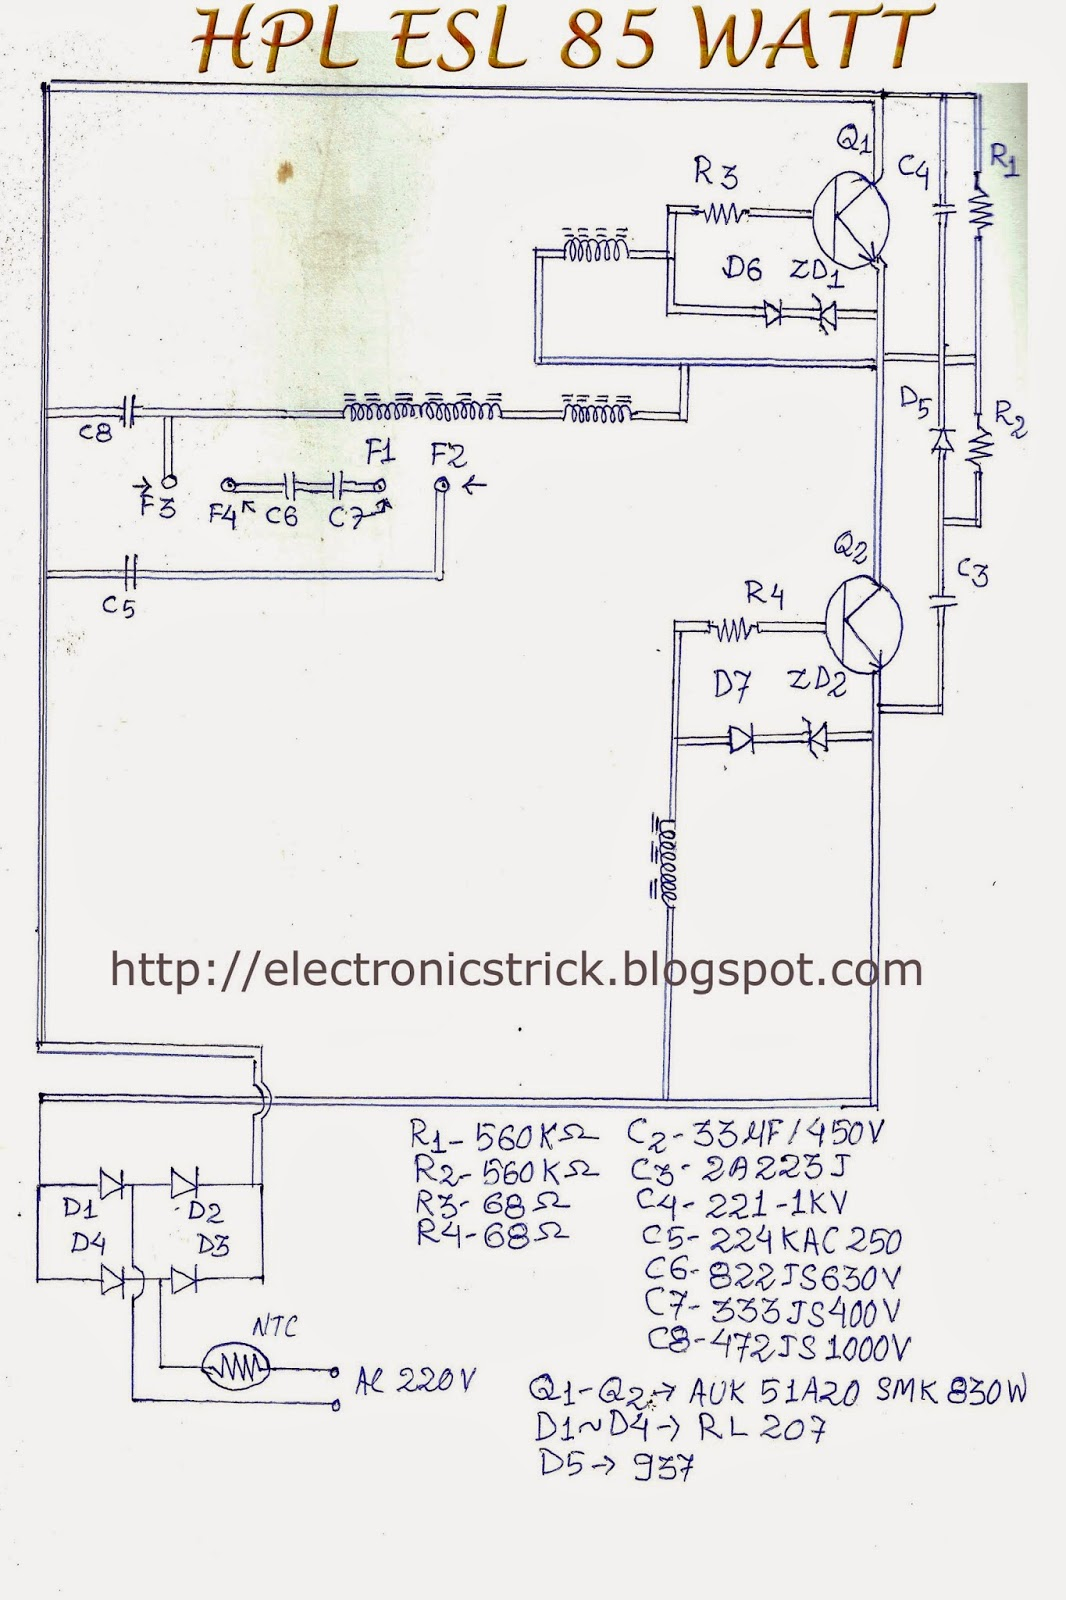 Another Cfl Bulb Circuit Diagram With Details Switch Microwave Oven Hcl Esl 85 Watt Ckt Tips And Trick Electronic Rh Blogspot Com Design